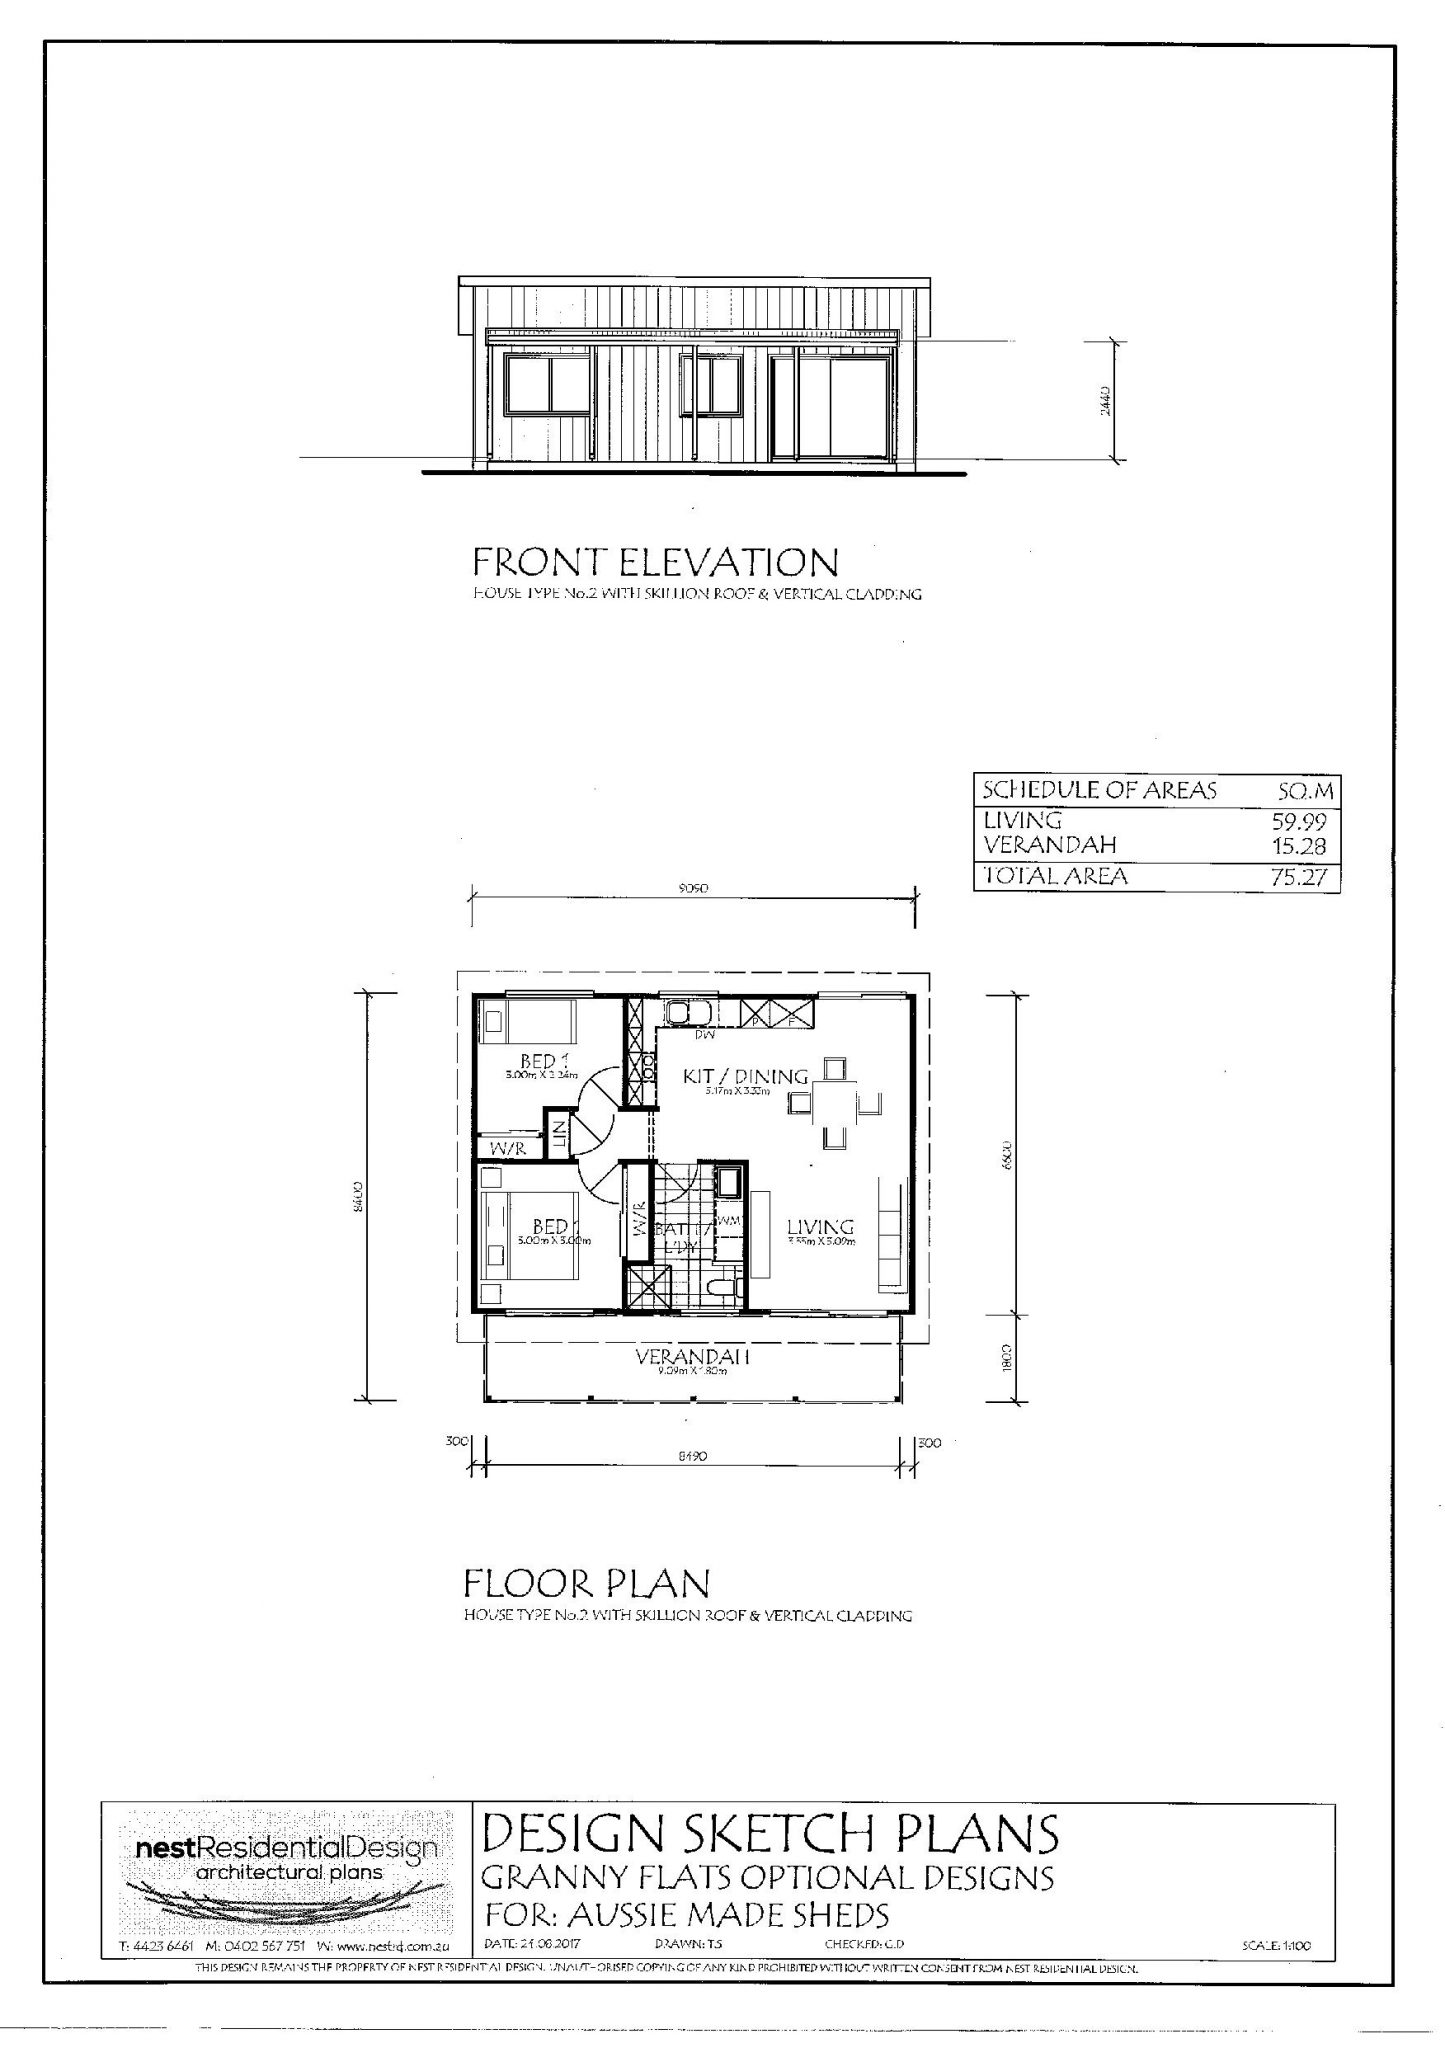 design-sketch-plans-aussie-made-sheds-24-august-2017-rotated-page-004